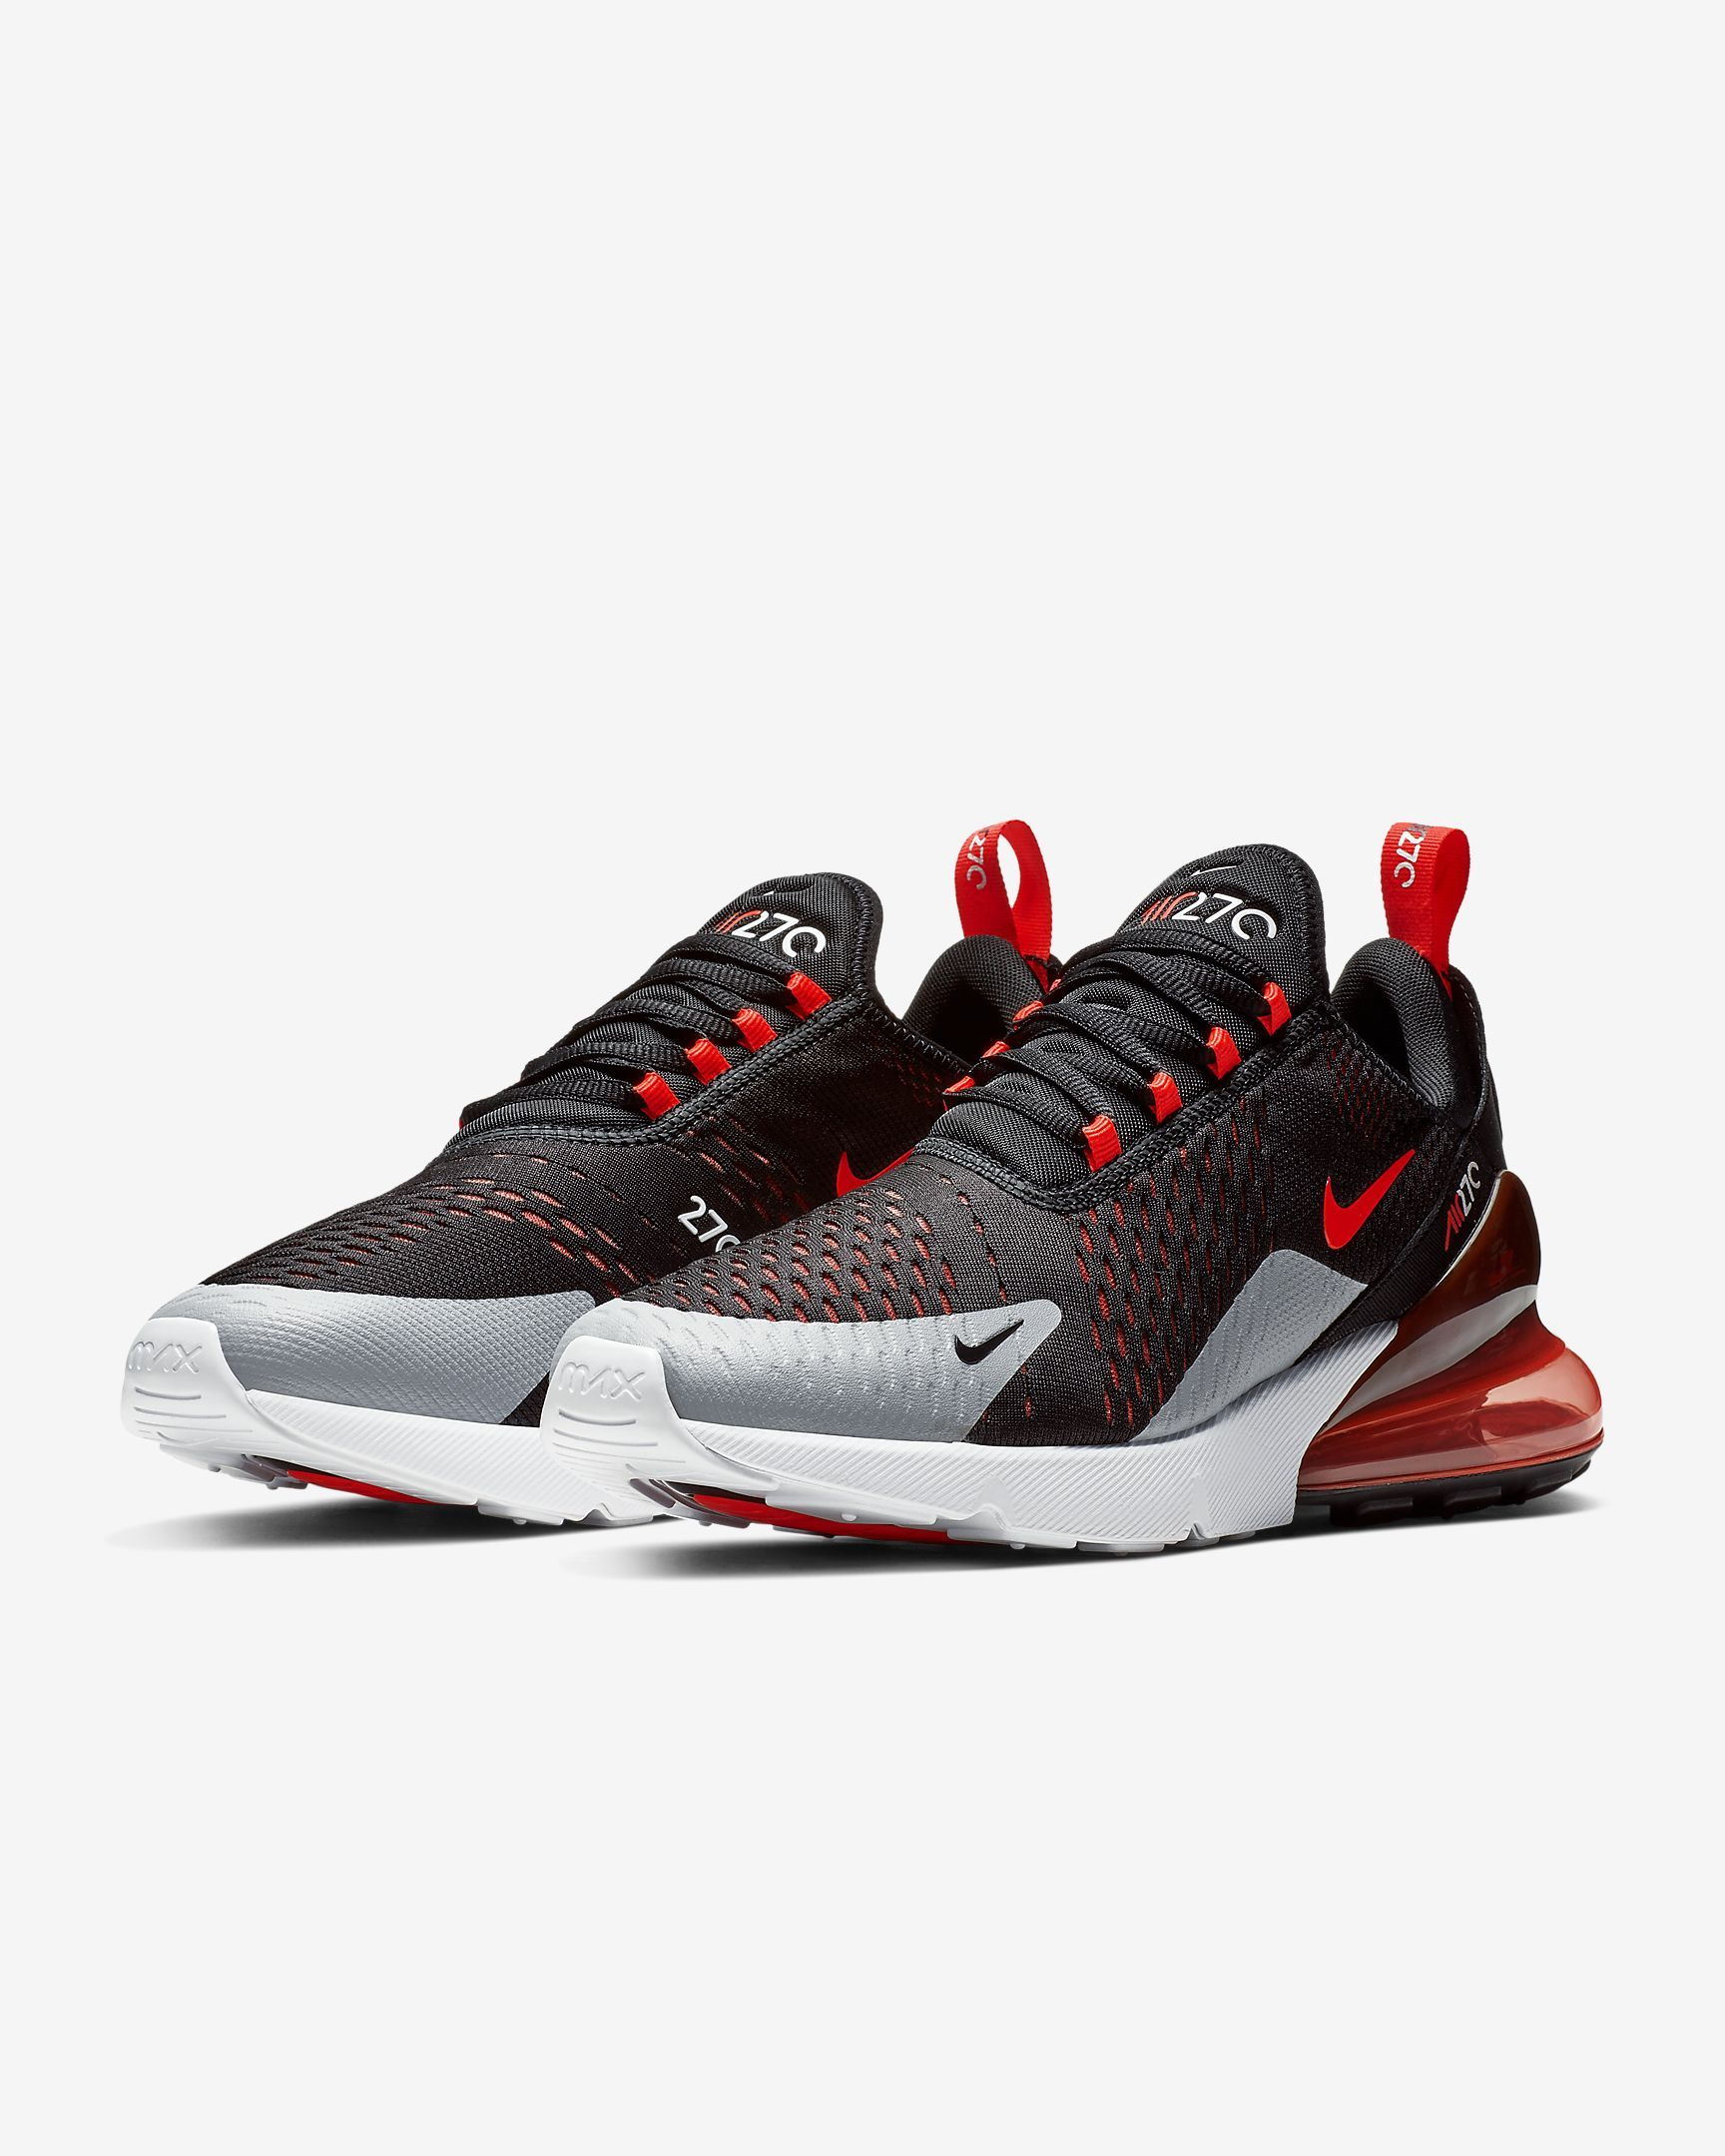 Air Max 270 Herrenschuh. Nike DE | Nike air max, Nike shoes